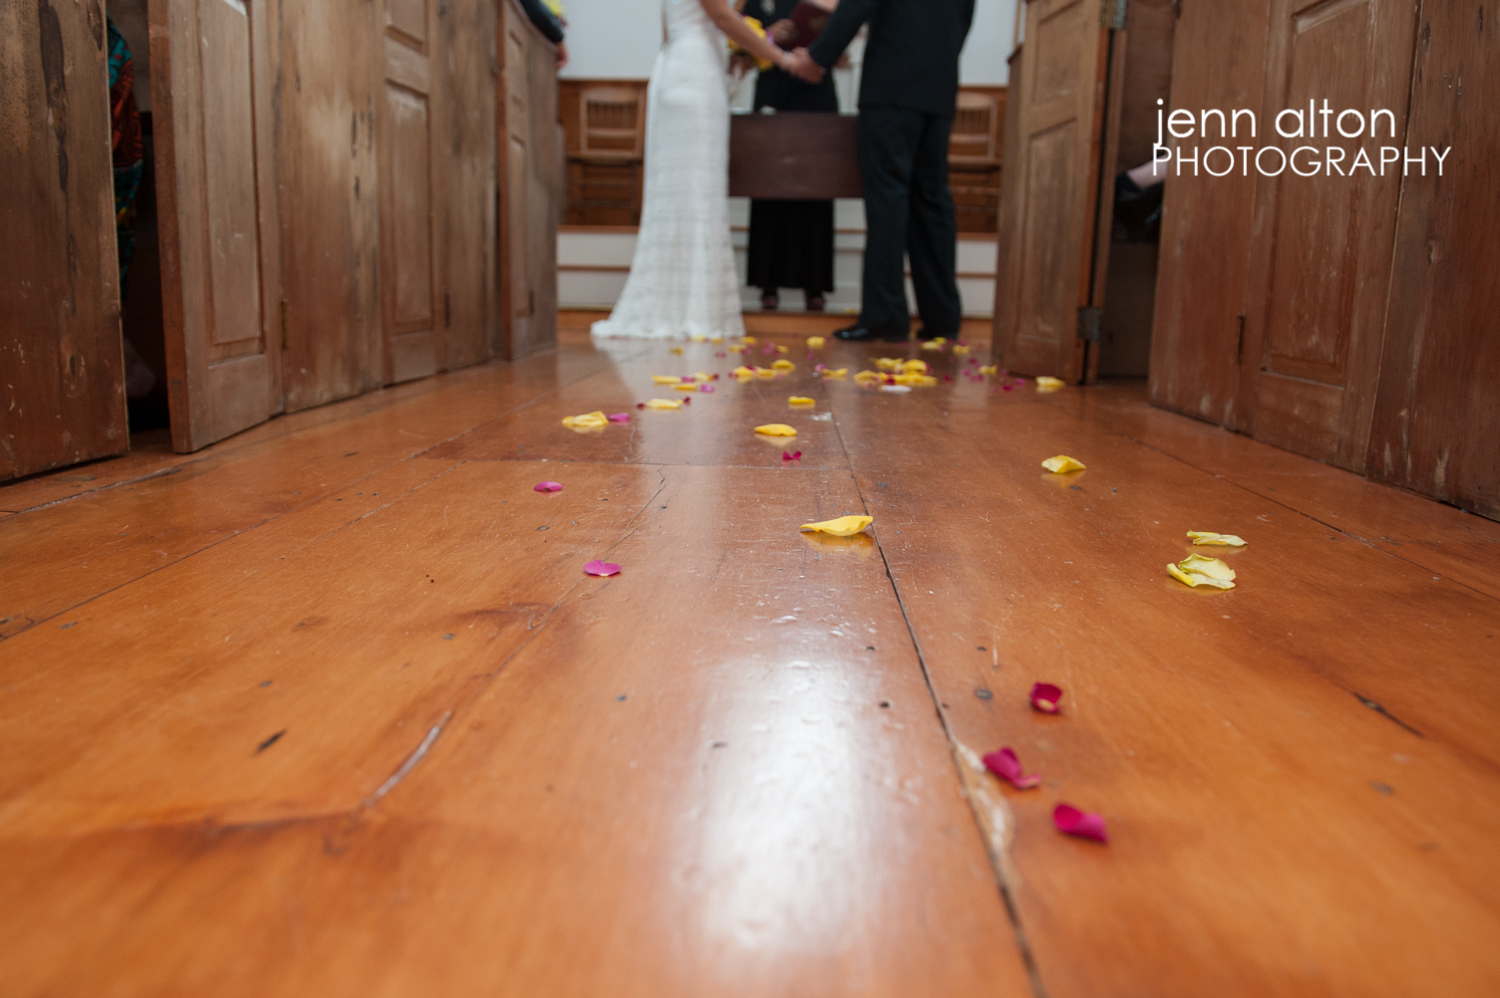 Bride and groom holding hands during ceremony and flower petals on the floor, Mashpee Old Indian Meeting House